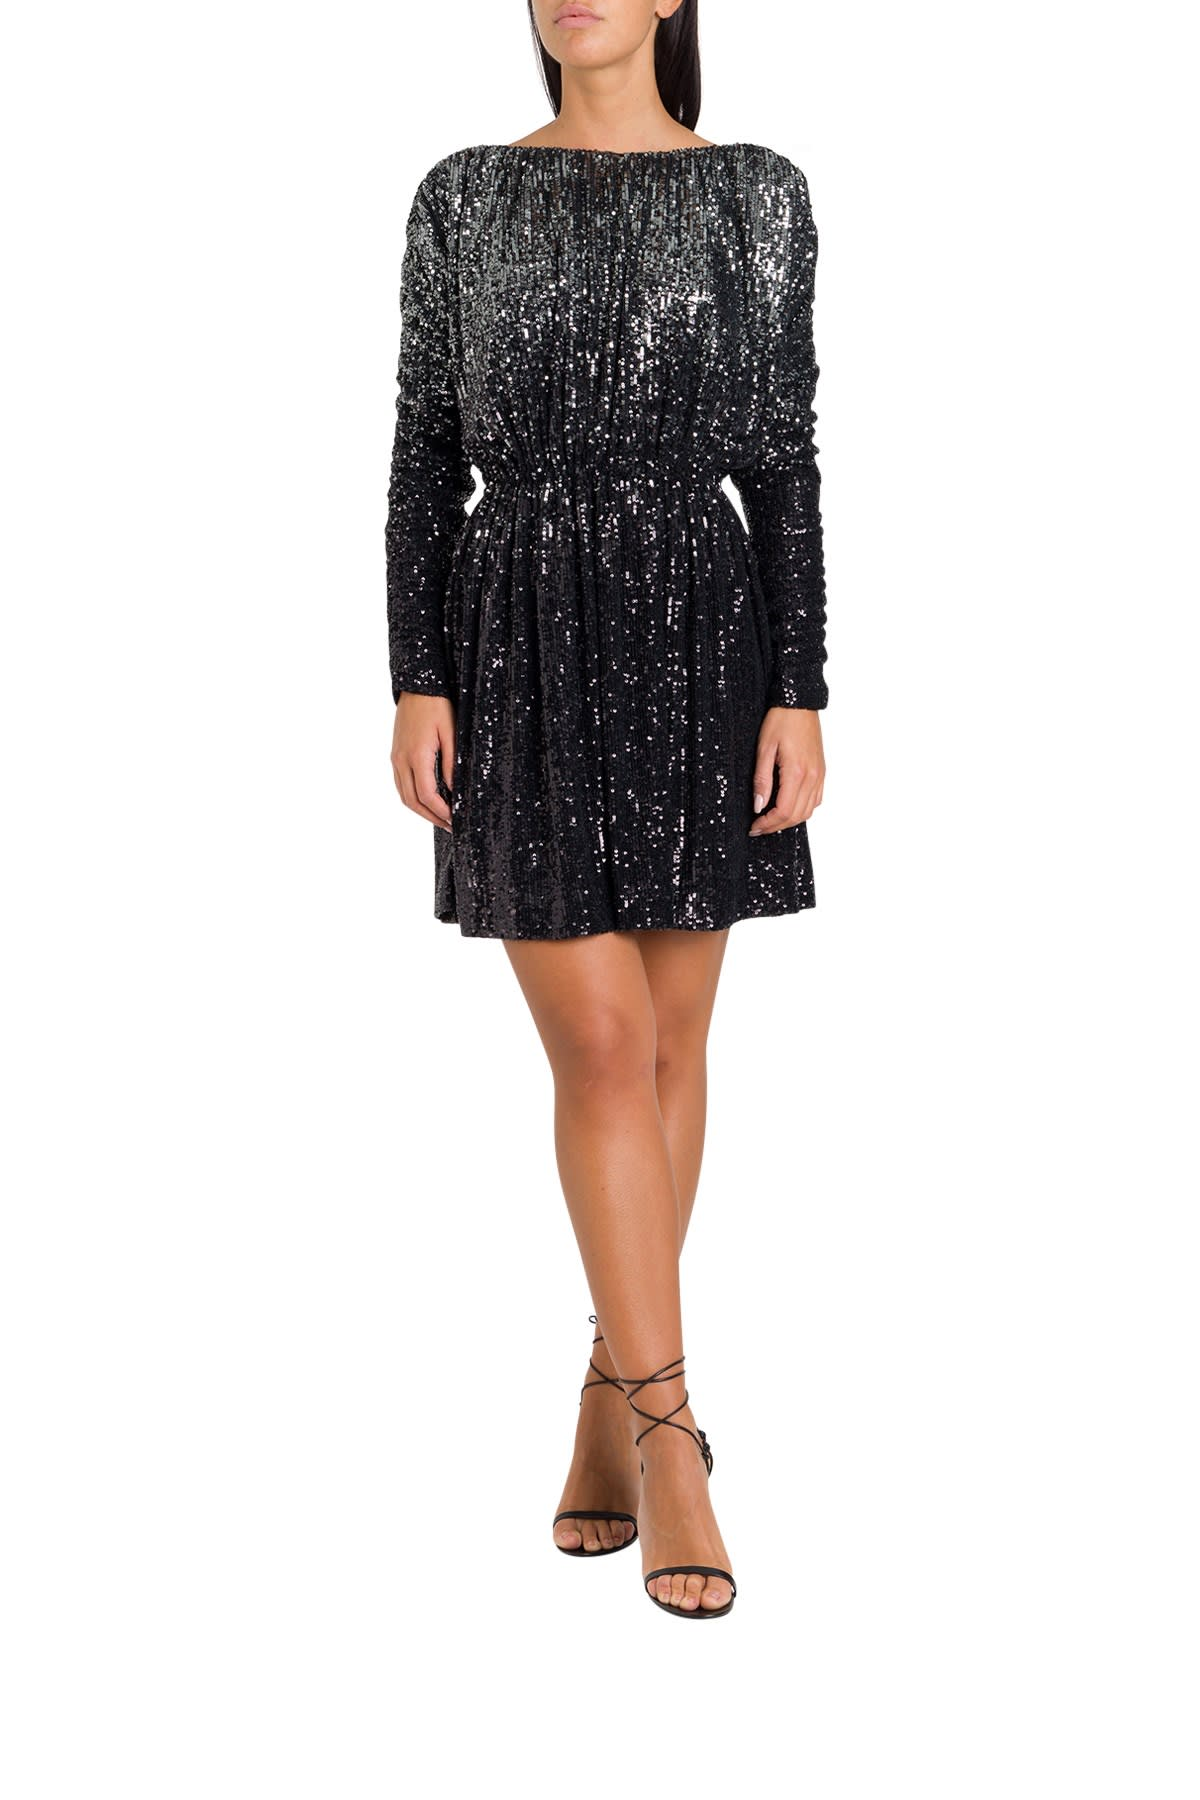 Saint Laurent Mini Dress With Allover Sequined Embroidery